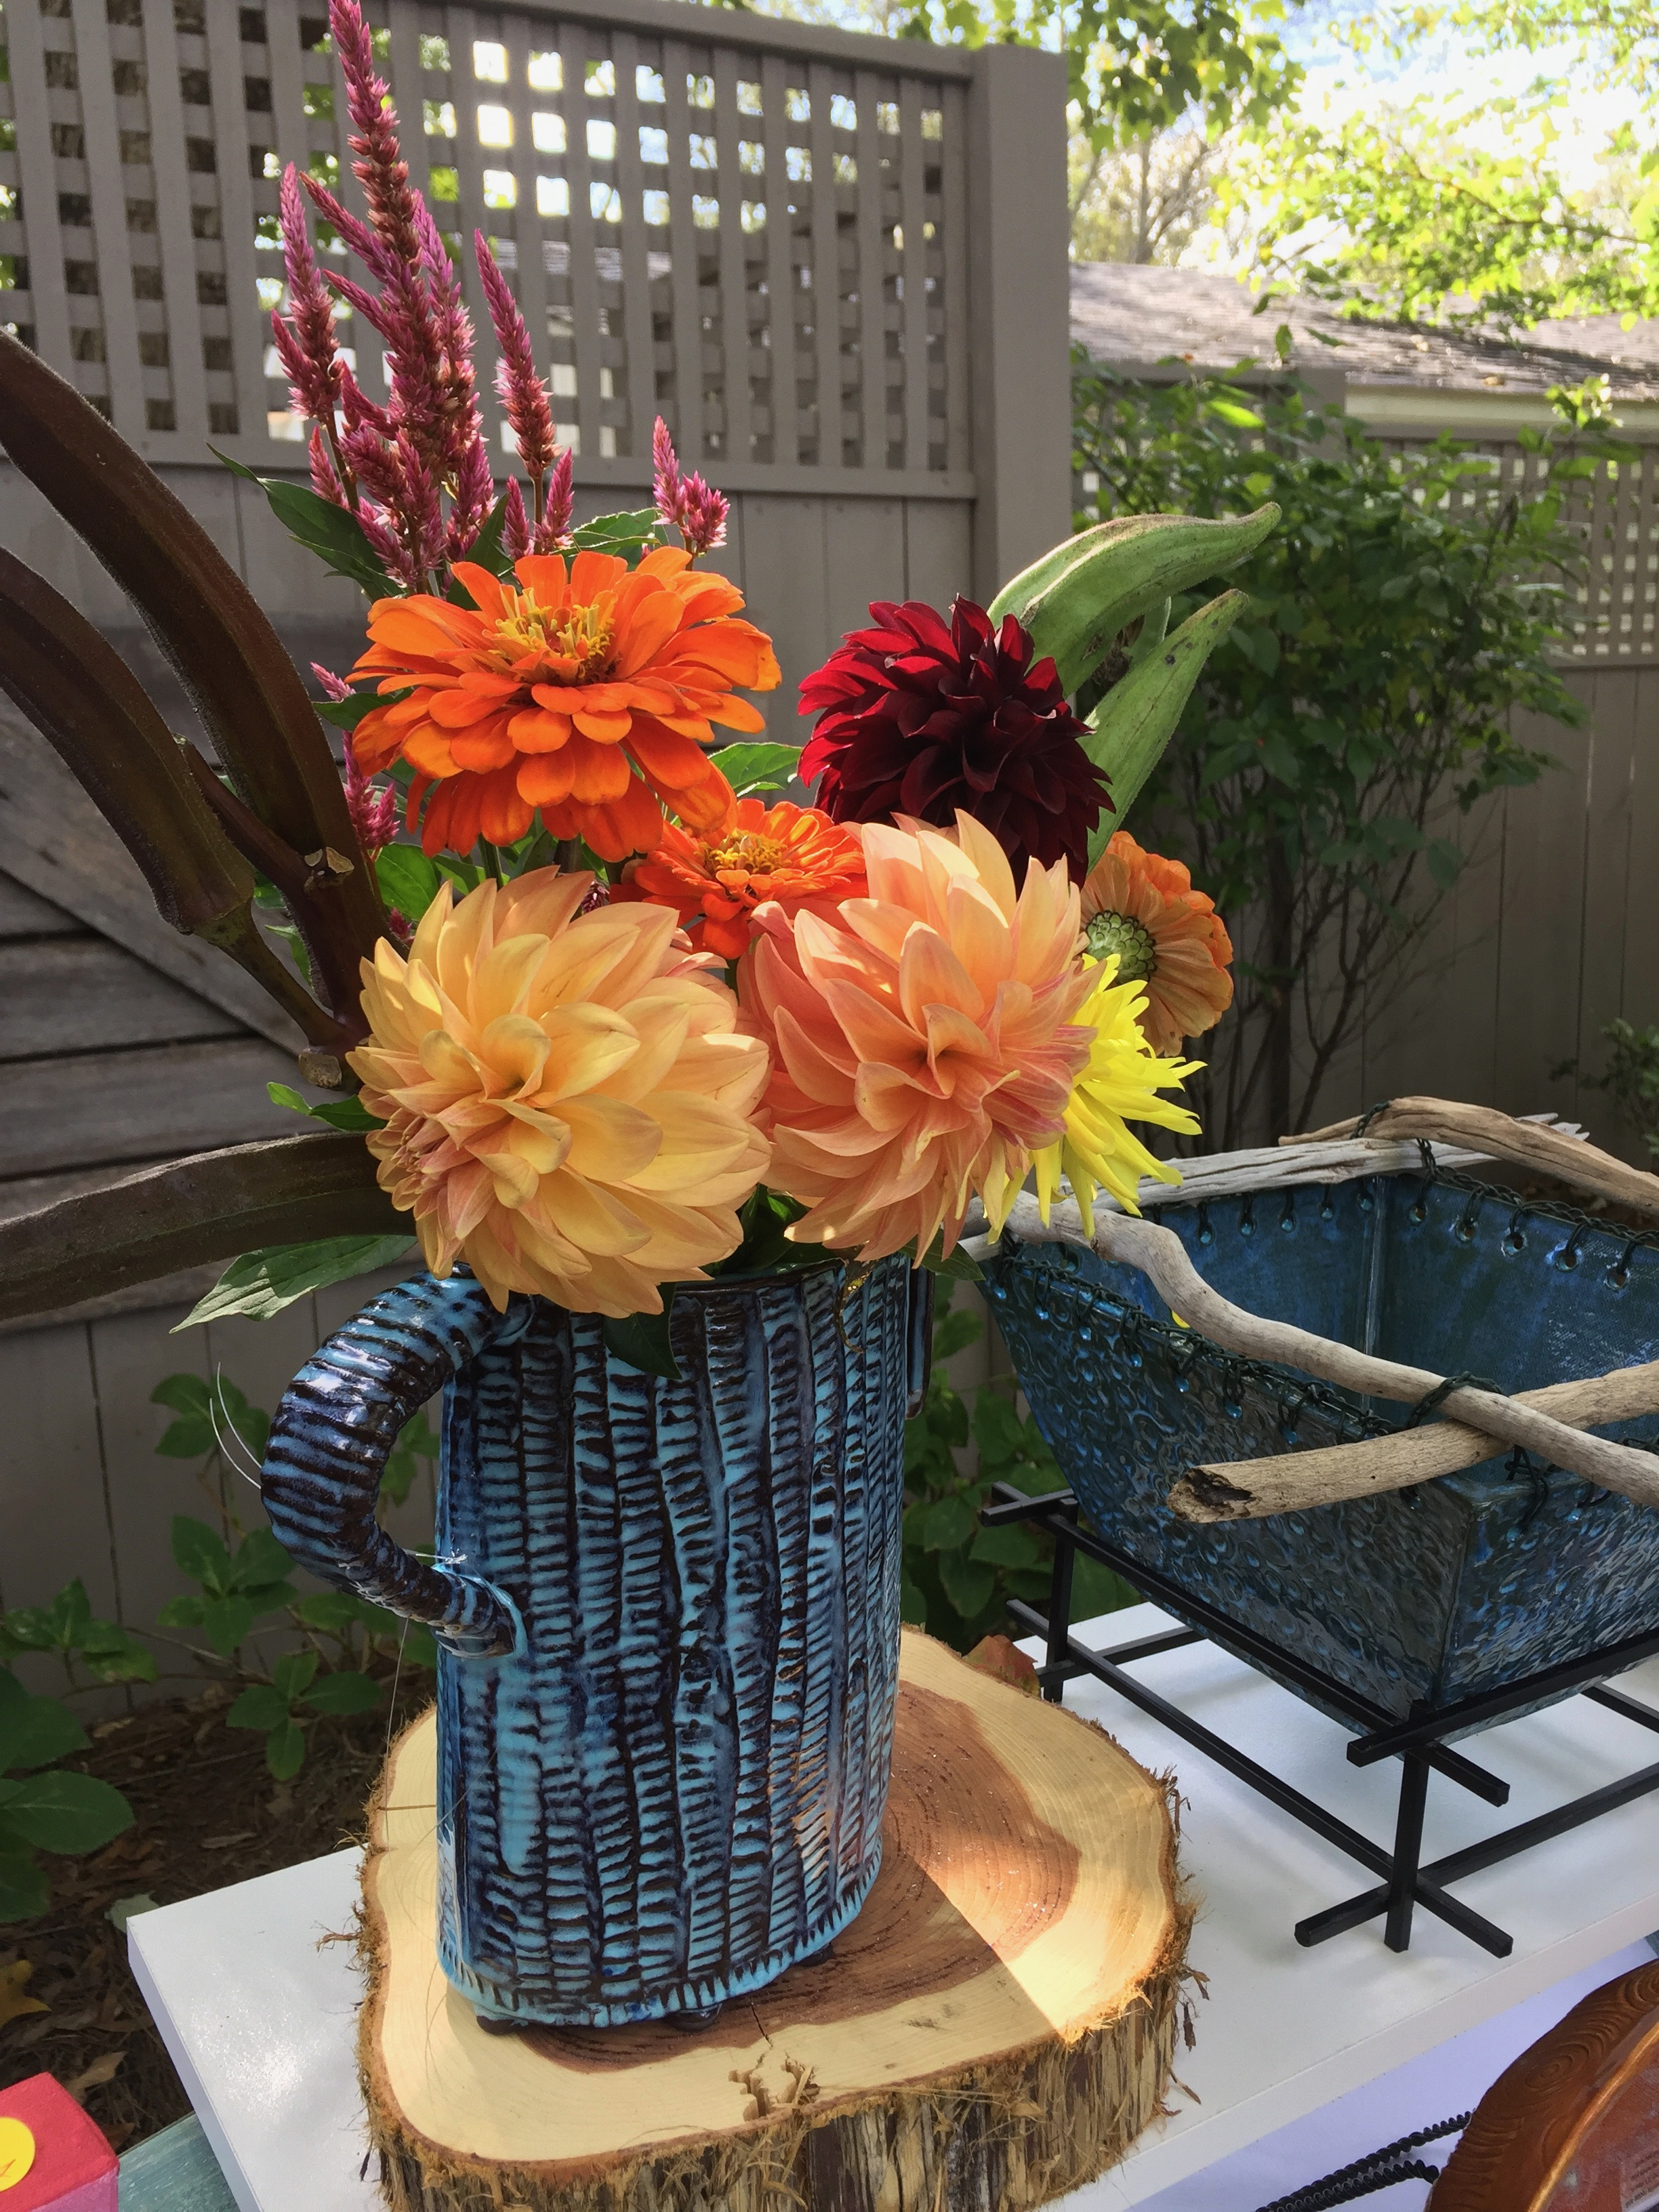 Buy yourself some flowers. Use that sweet tea pitcher on hiatus to house a beautiful bunch of color. Place it where you'll see it most often! Need a pitcher to hold your flower bunch? Click photo to purchase.